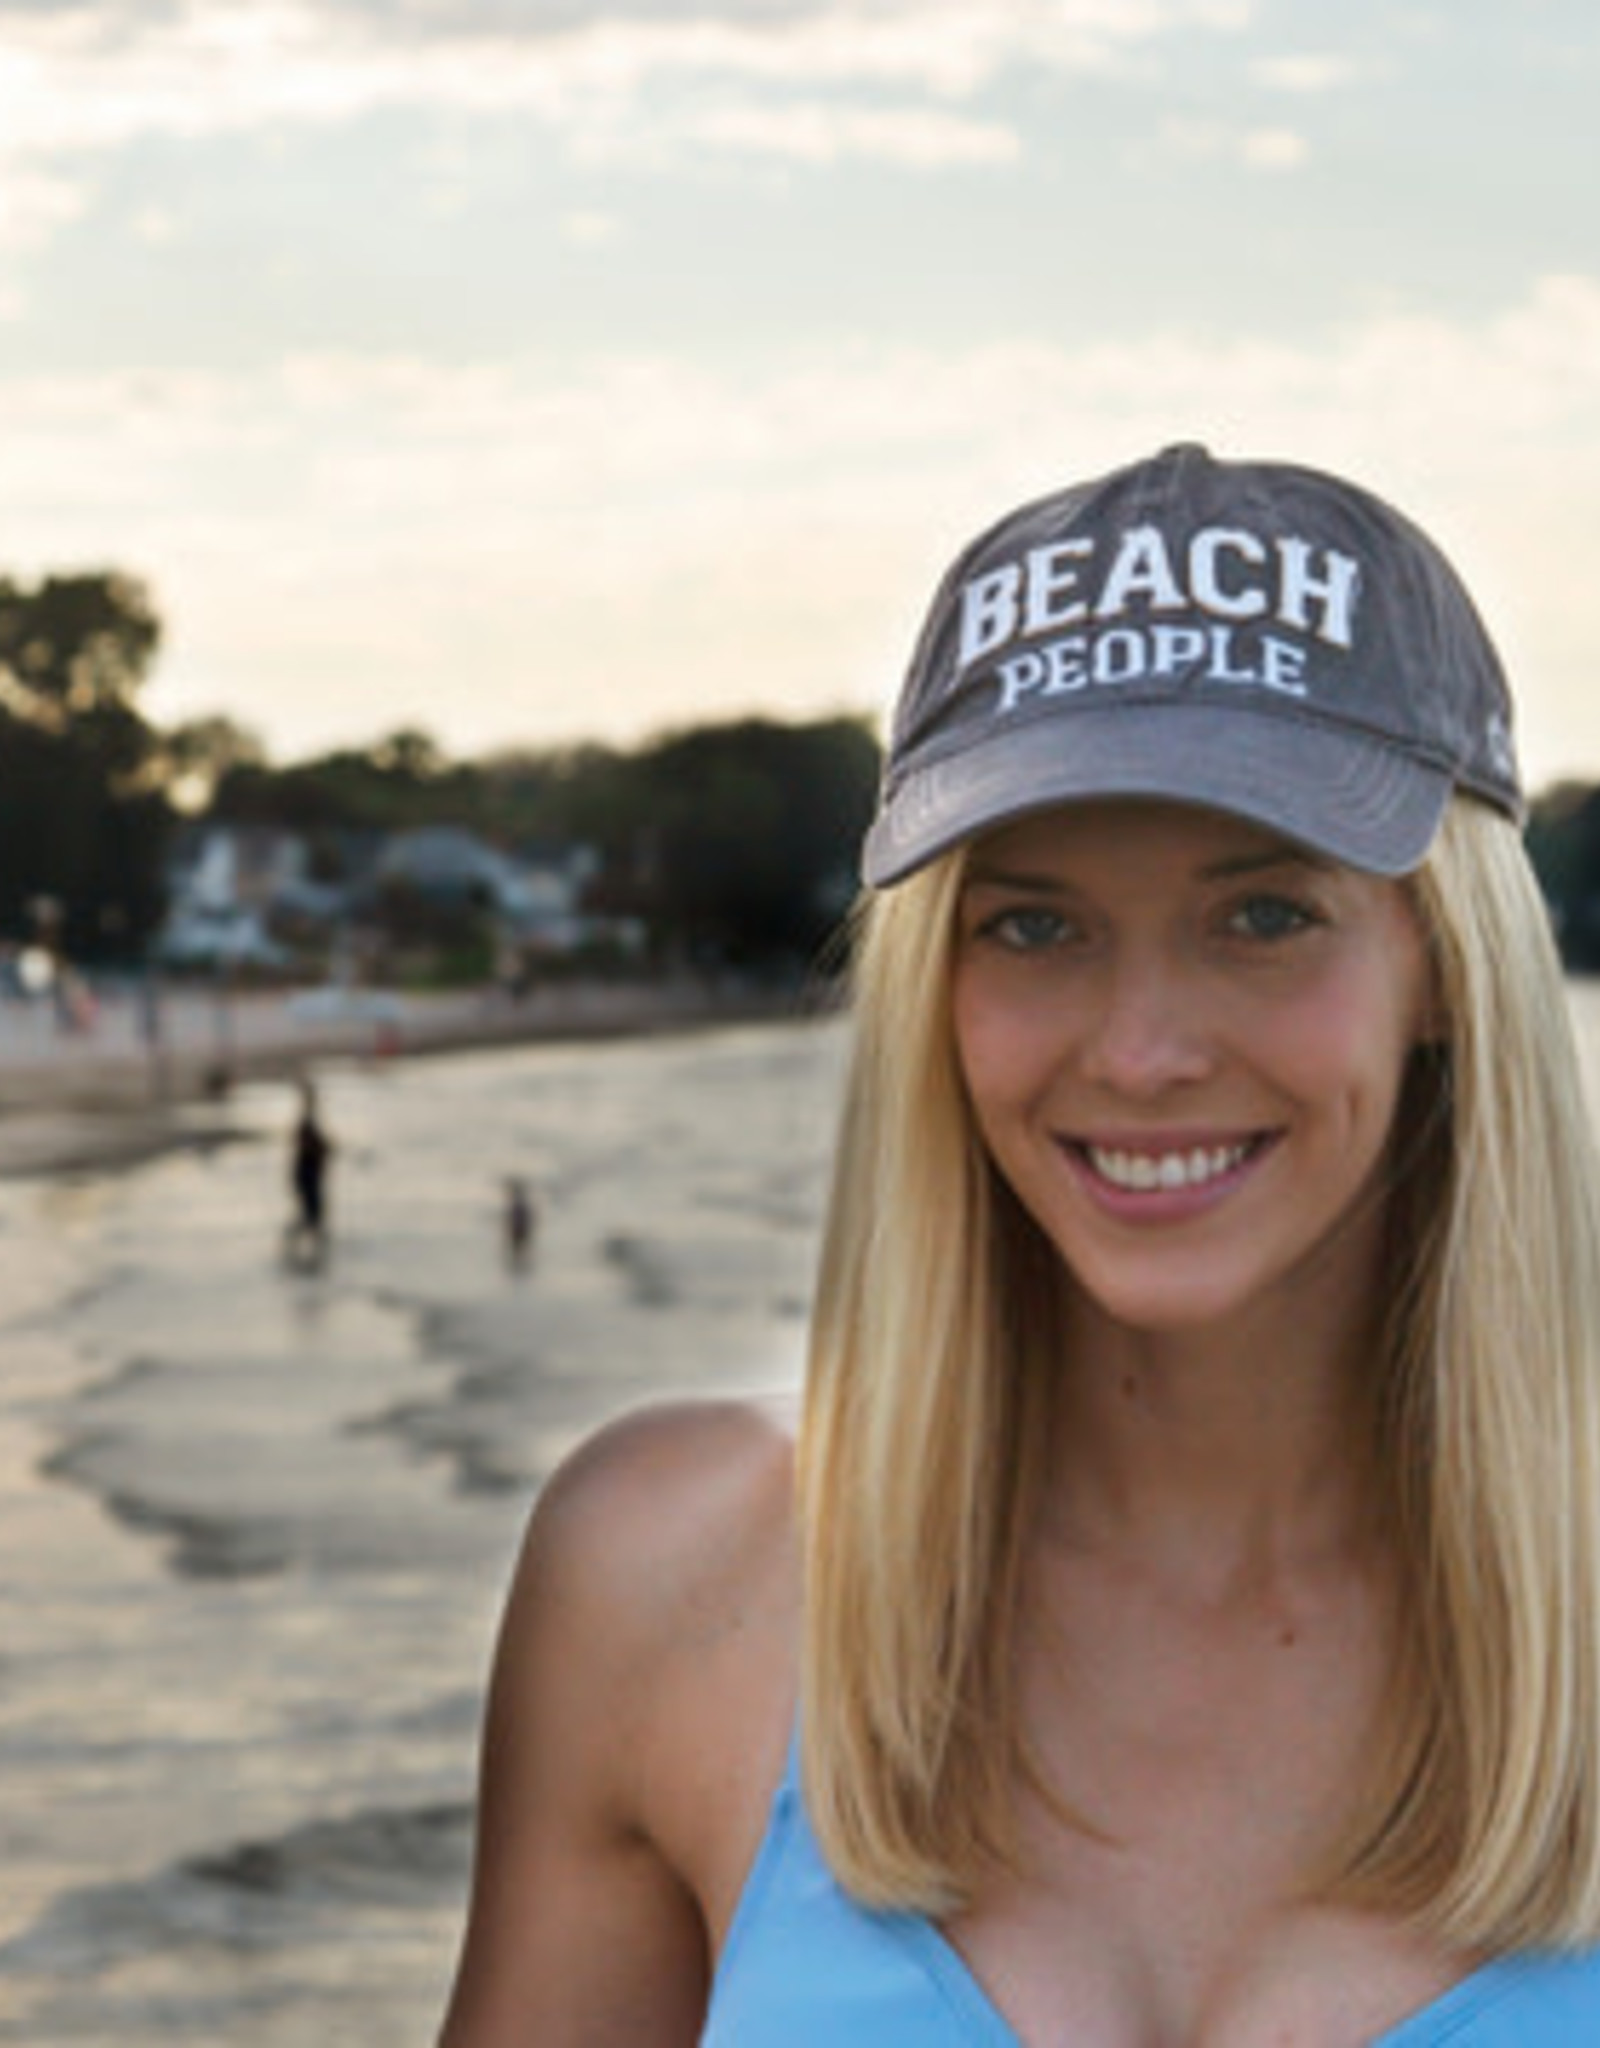 Pavilion Beach People Hat